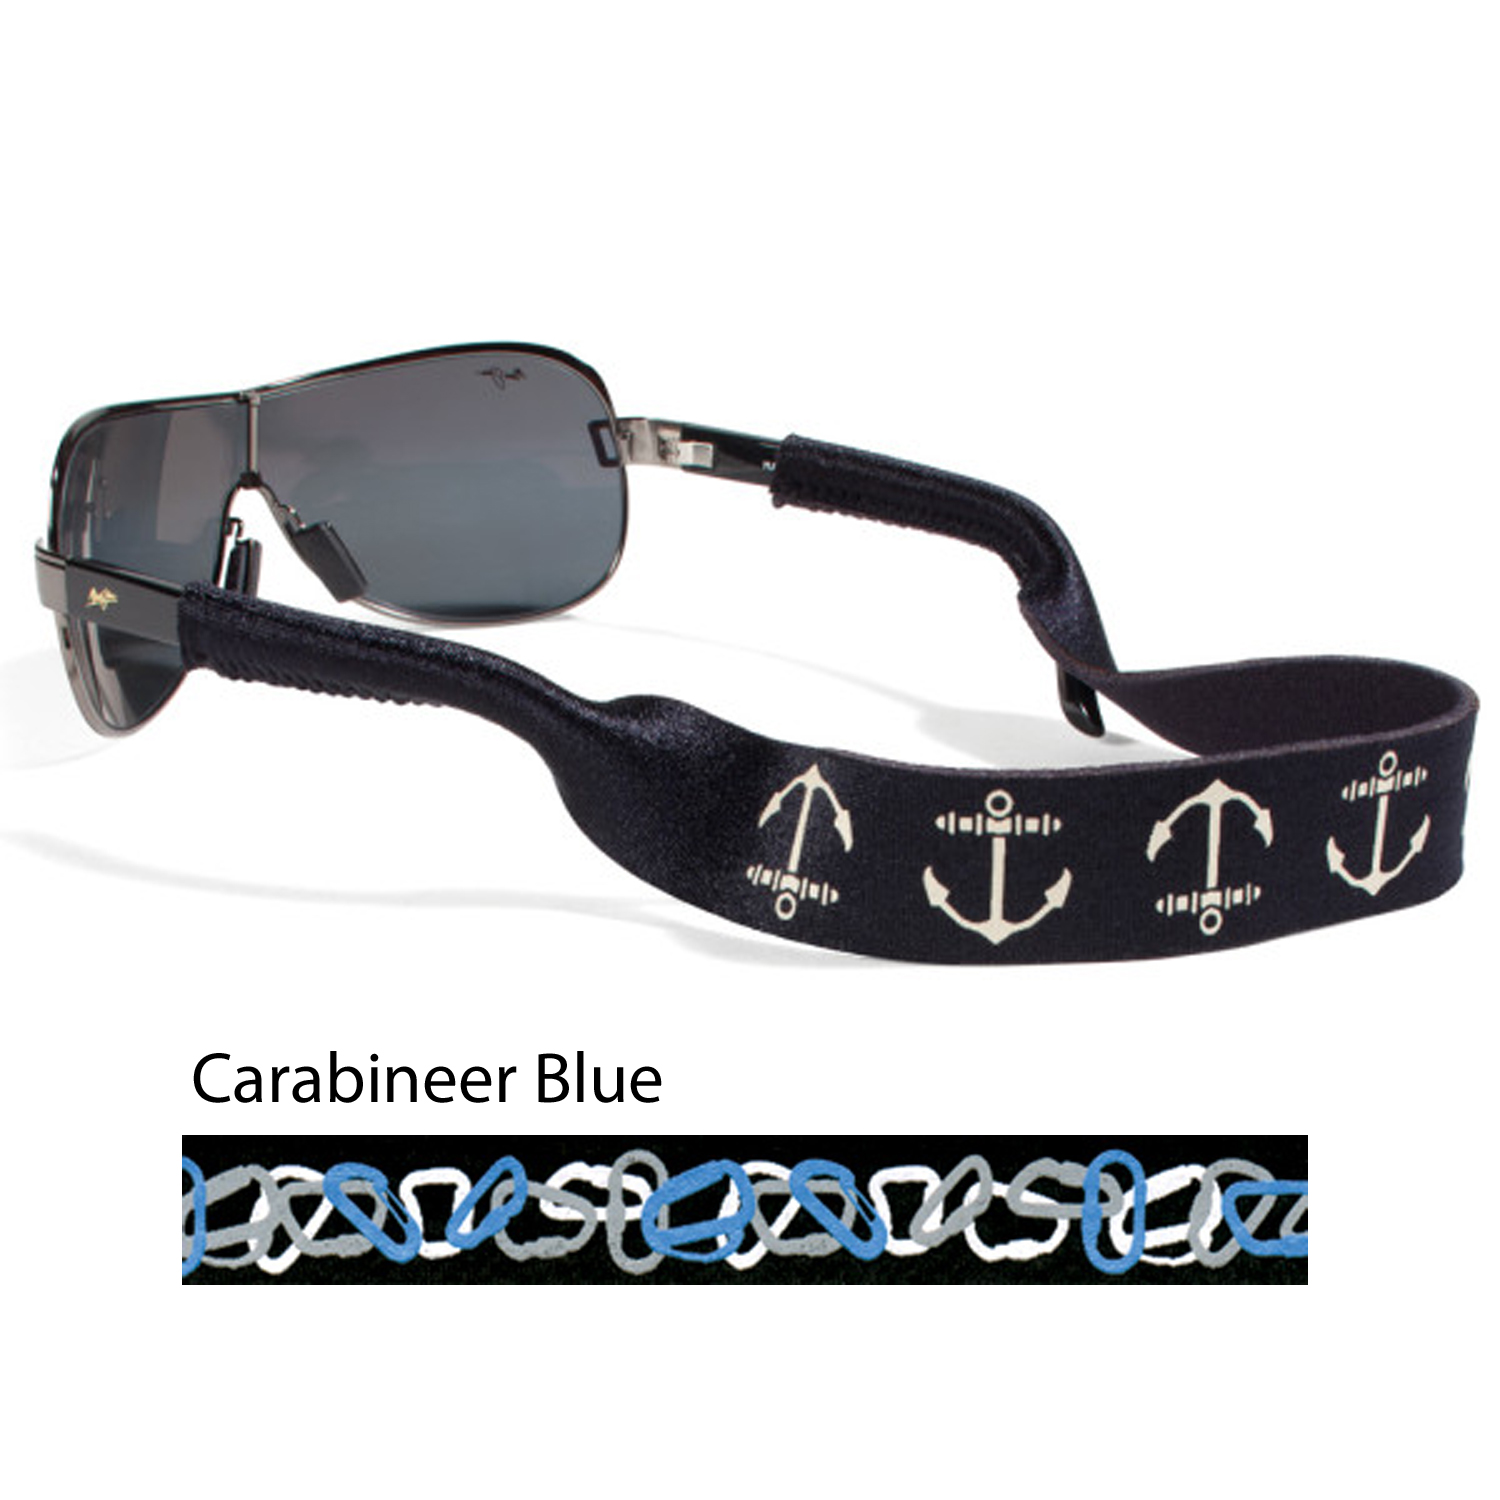 CROAKIES XL ICONIC - CARABINEER BLUE (XLCBB3HT)